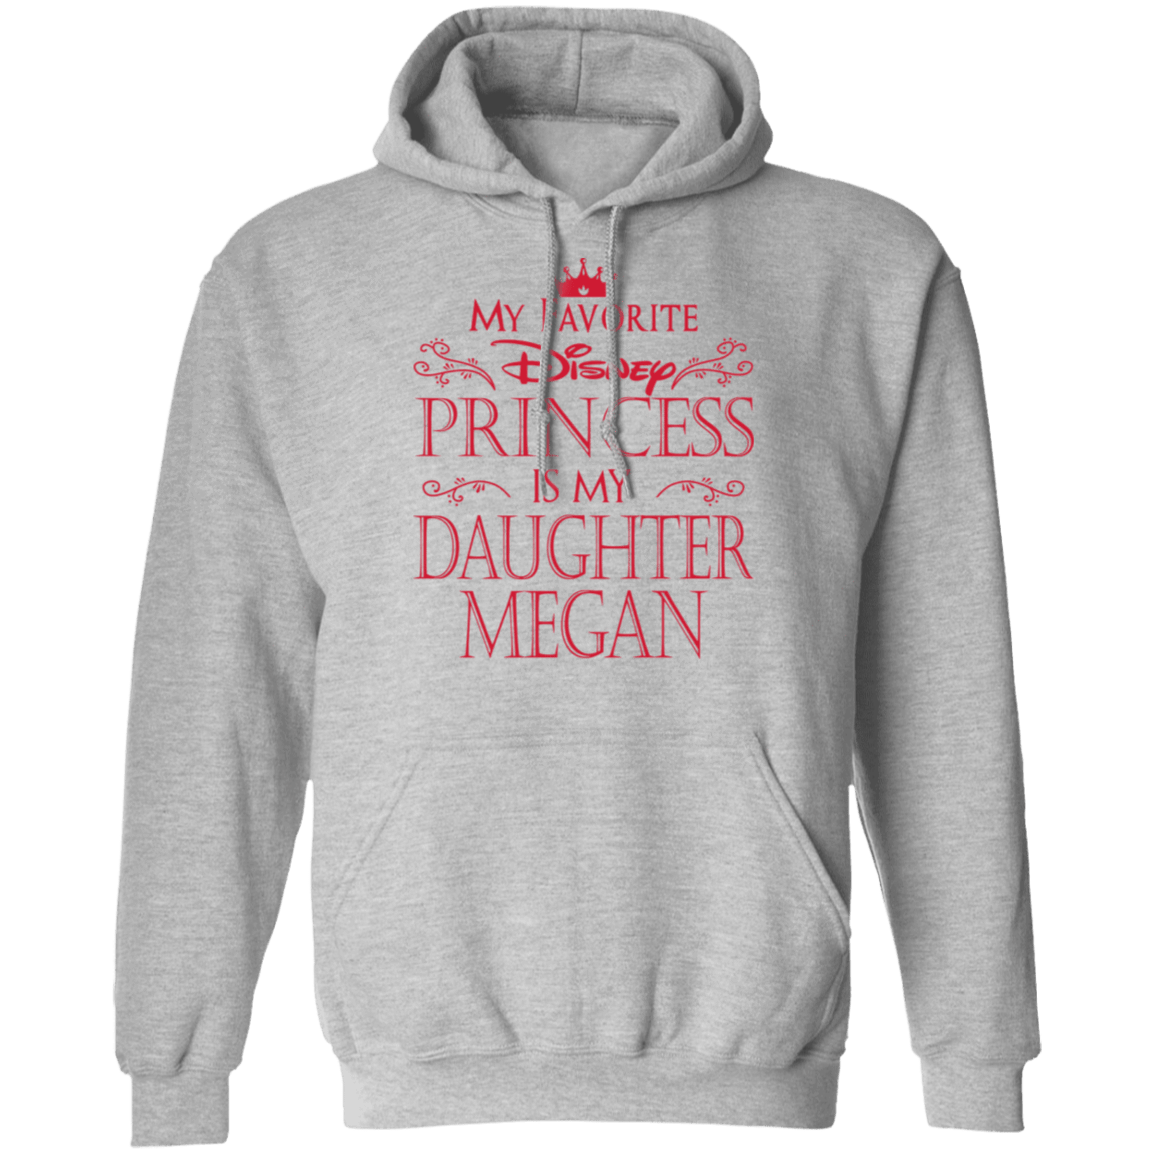 My Favorite Disney Princess Is My Daughter Megan T-Shirts, Hoodies, Tank 541-4741-81647388-23111 - Tee Ript